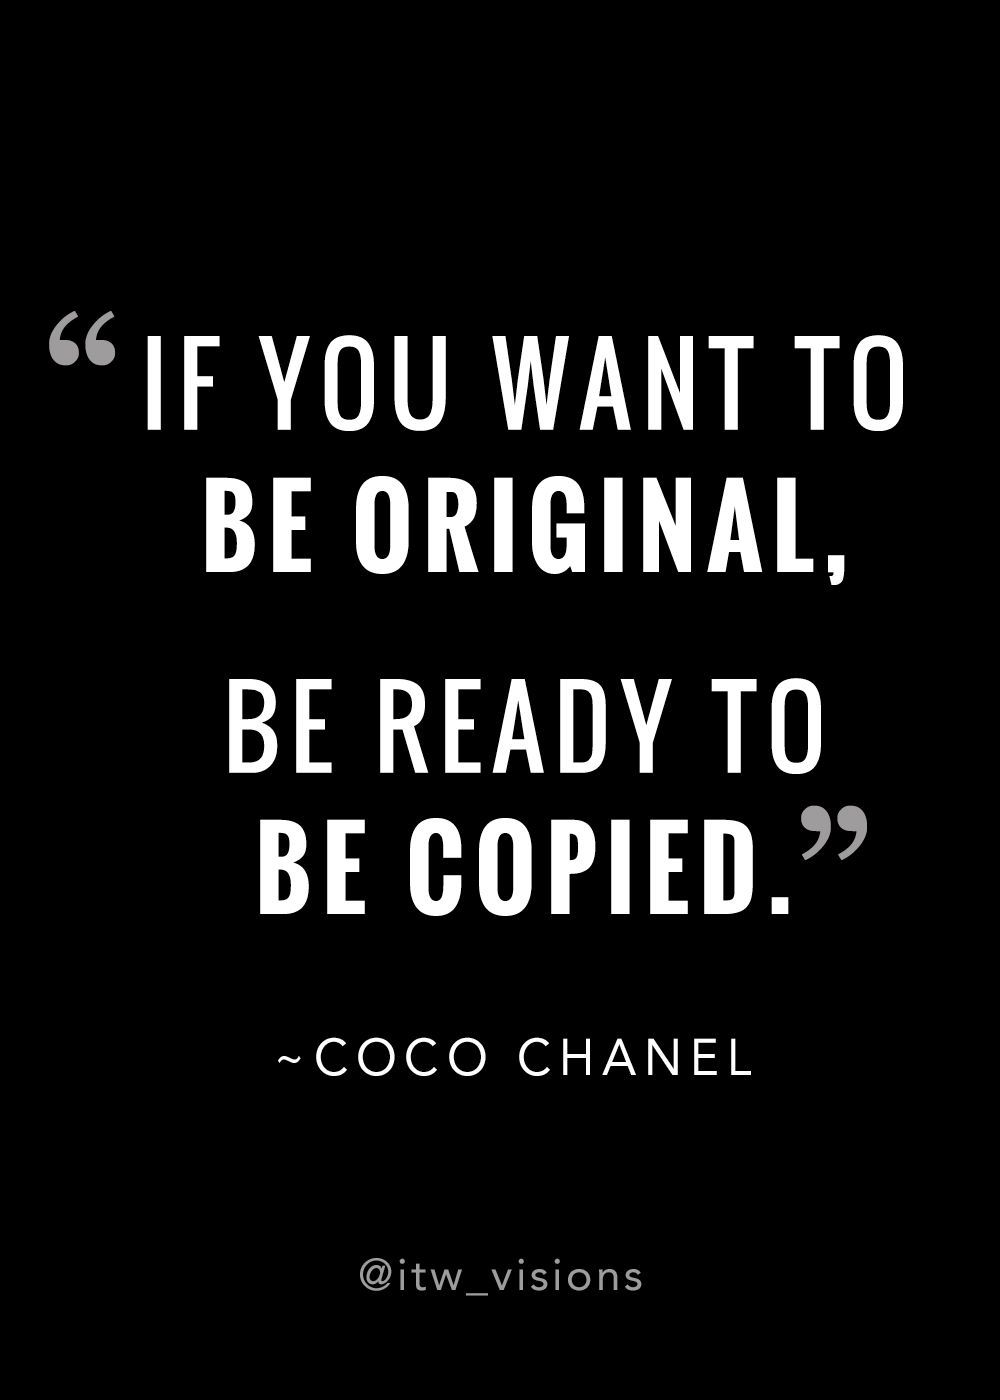 Motivational Quote About Being Original If You Want To Be Original